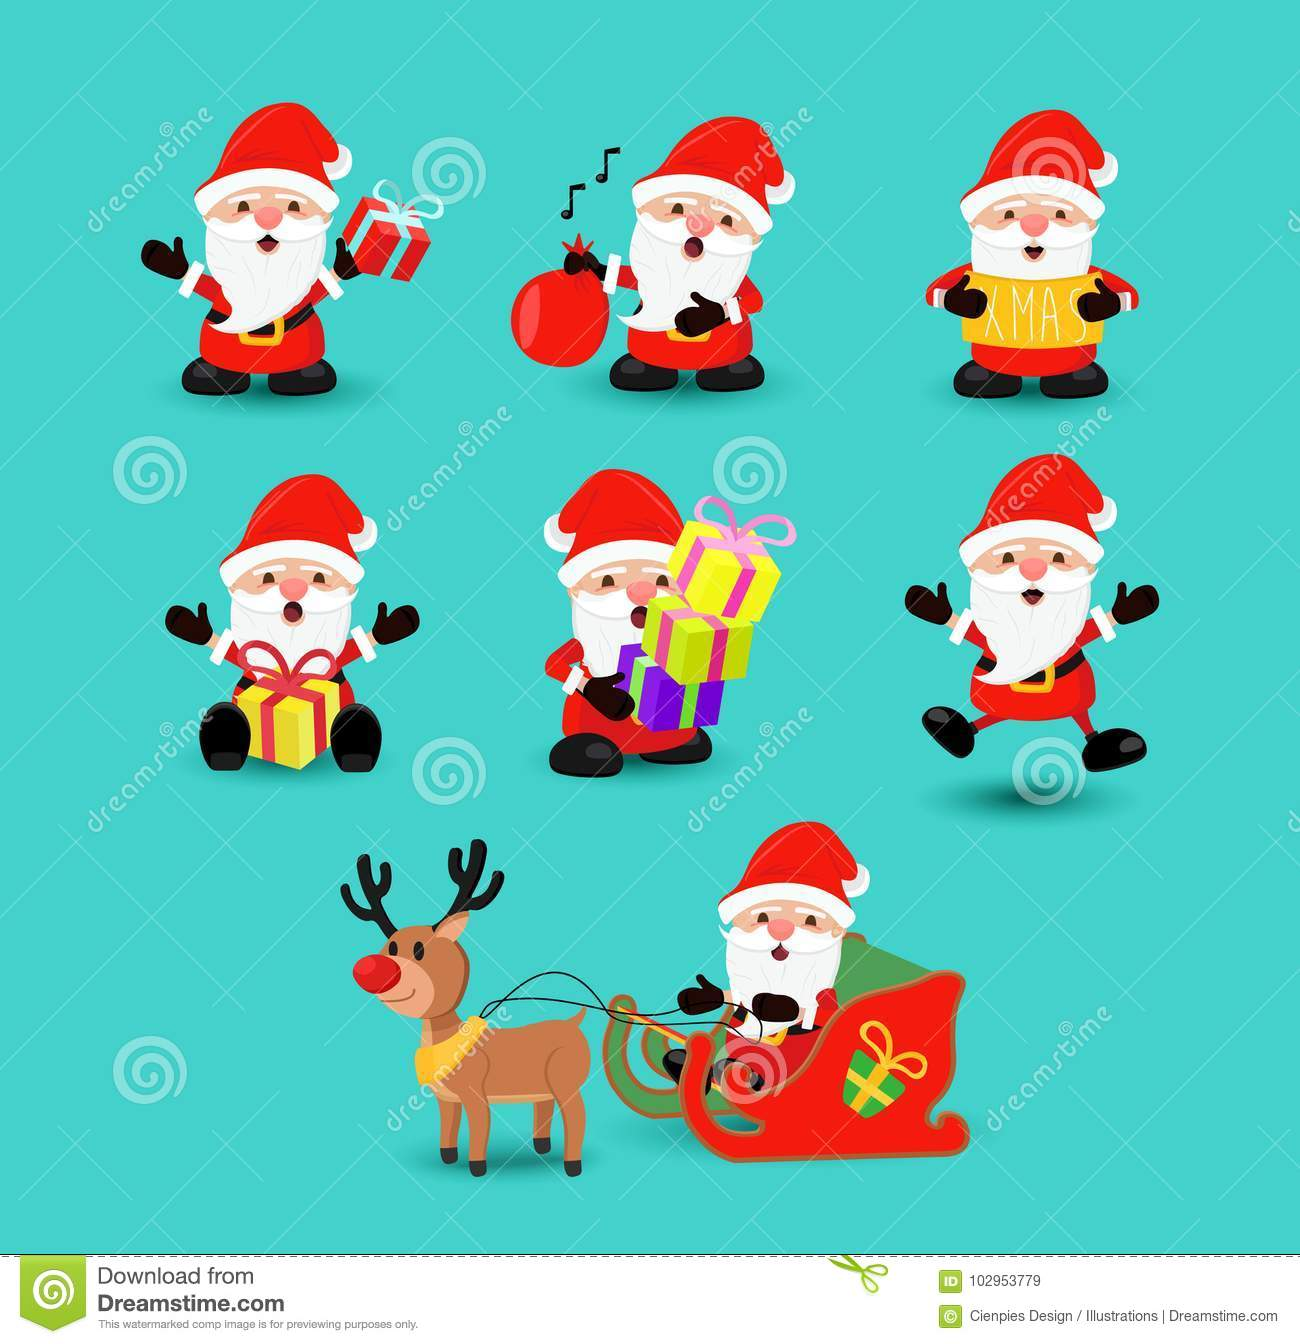 f83268230f1 Christmas holiday set of cute santa claus character cartoons in different  poses and emotions. Includes reindeer